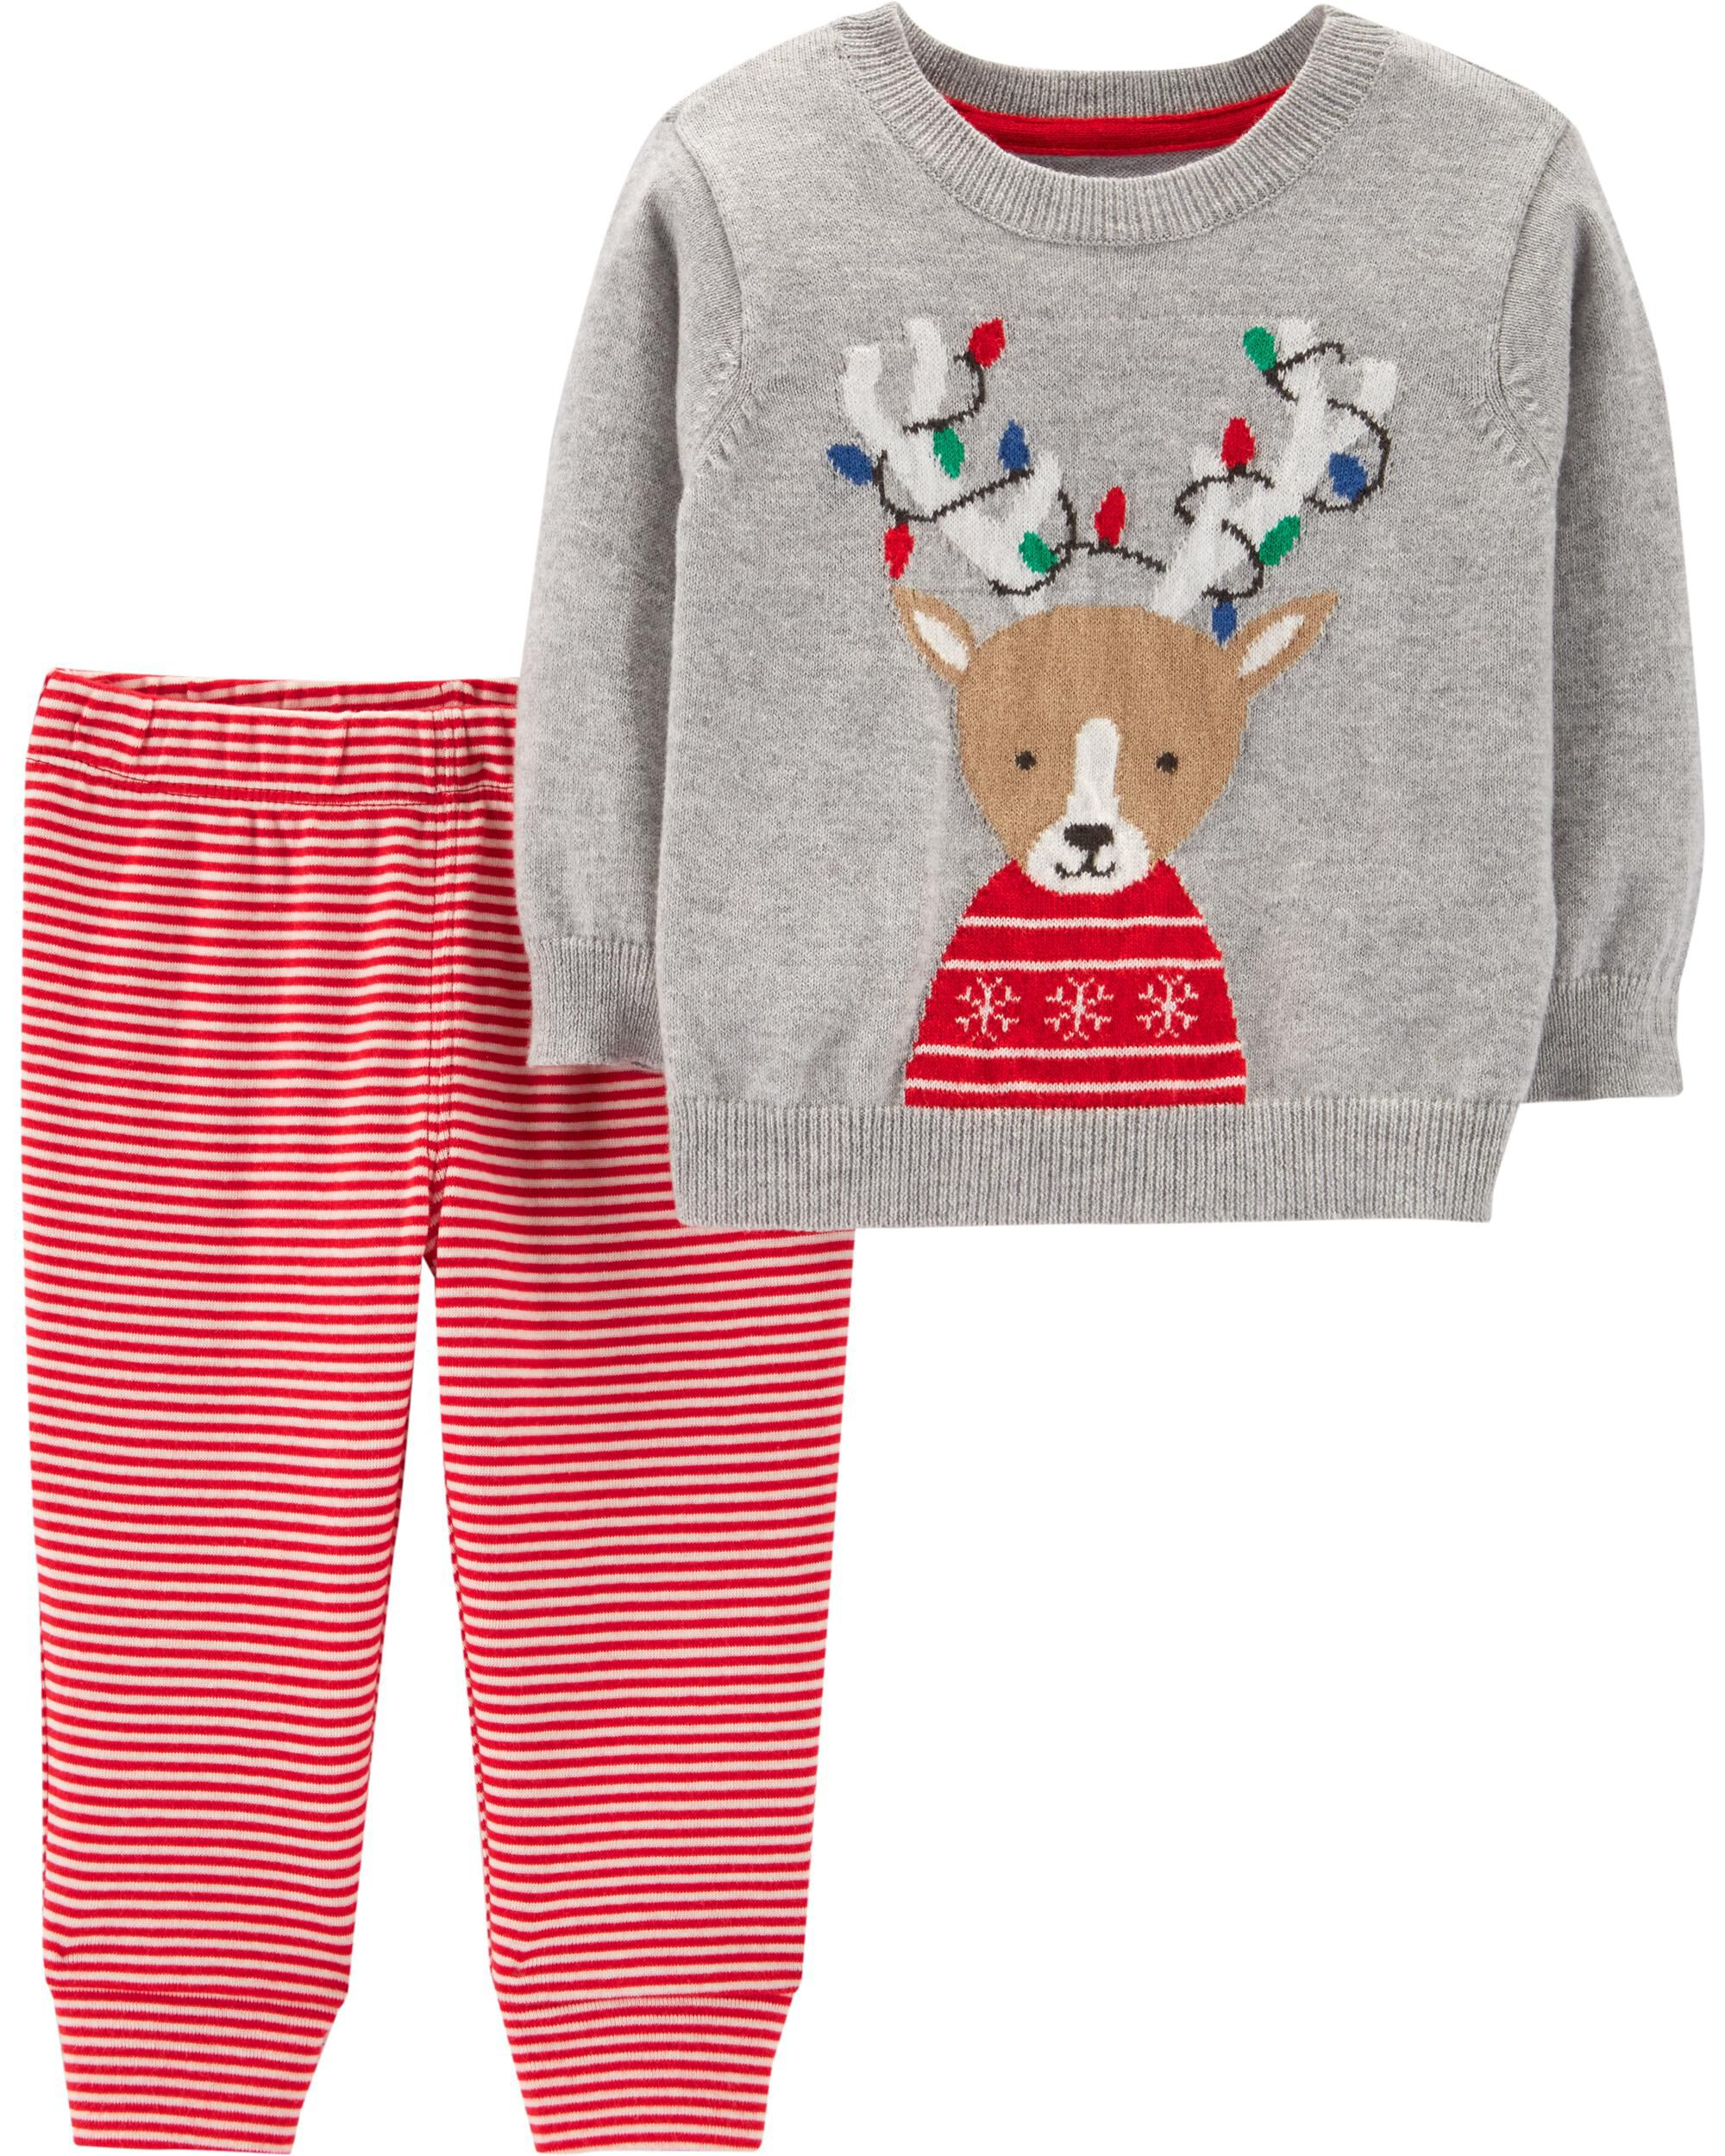 786602f20a91 Baby Neutral 2-Piece Reindeer Sweater   Striped Pant Set